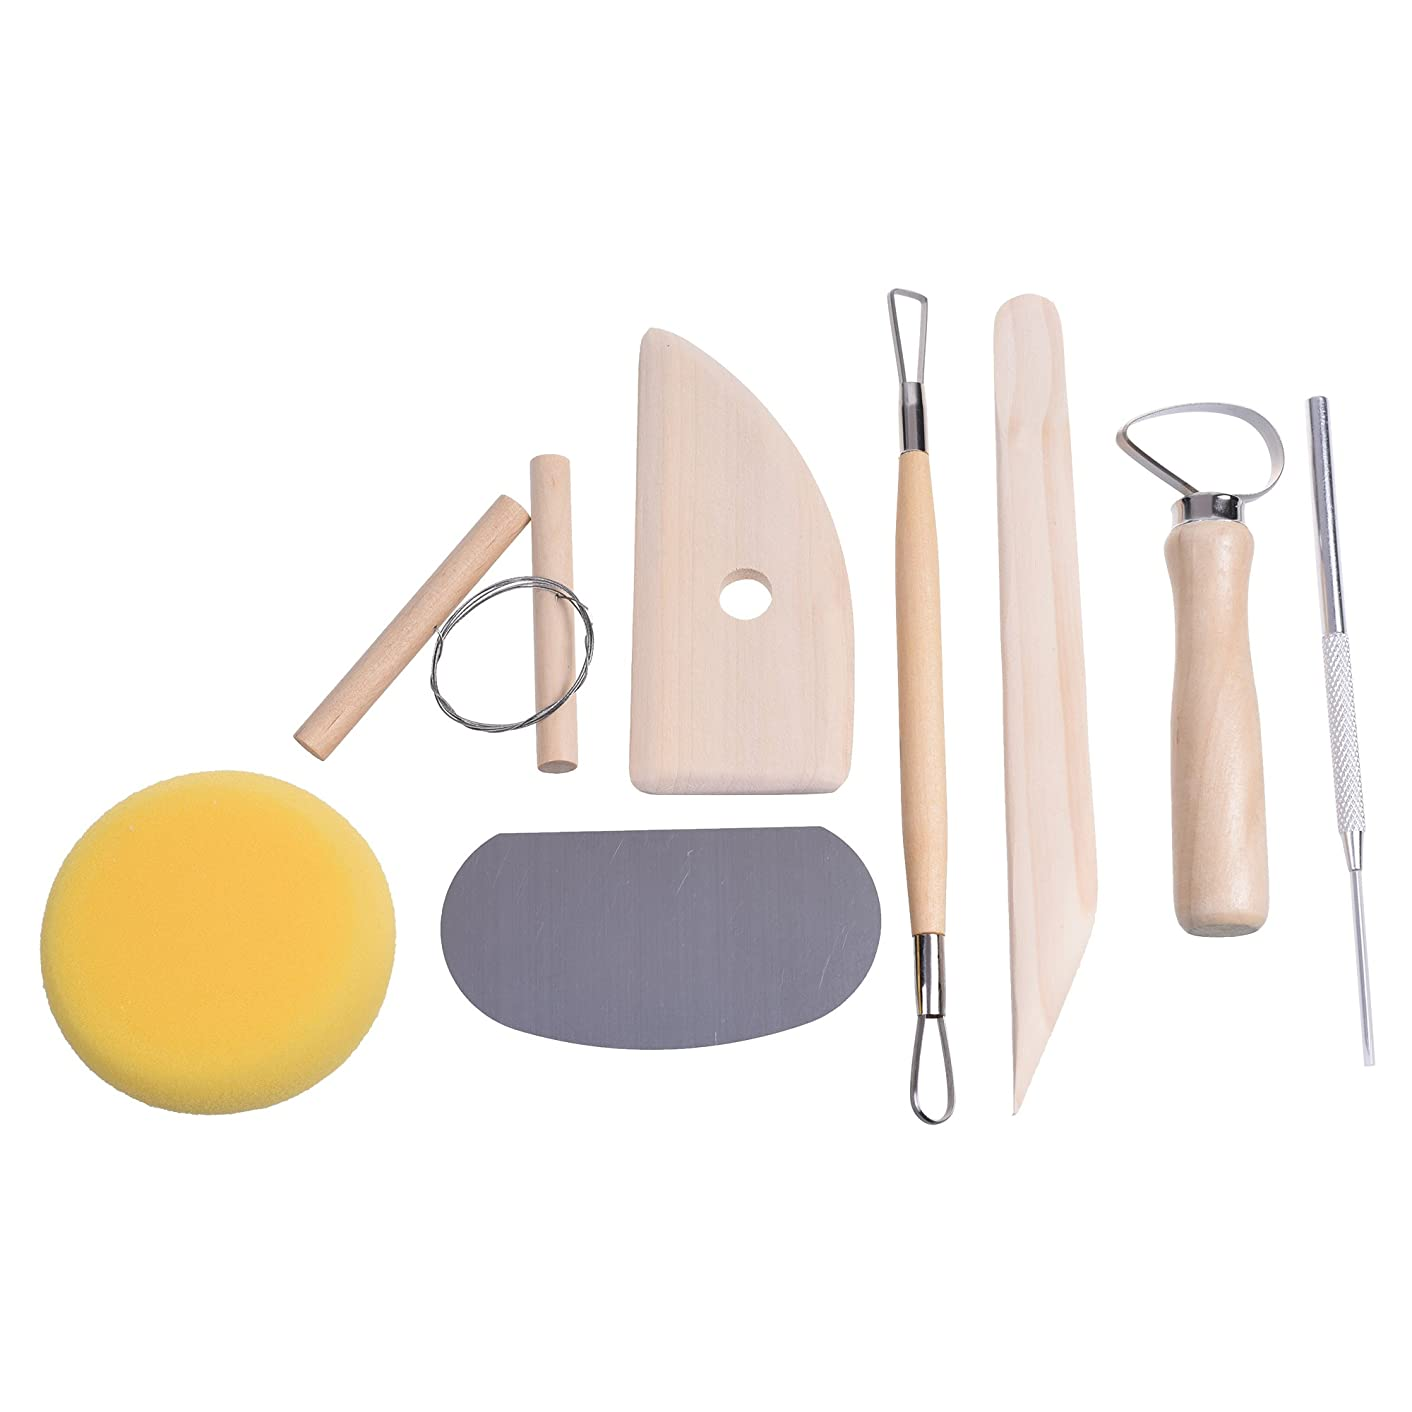 COSMOS Pottery Tool Kit 8 pcs Set for Clay, Sculpting, Ceramic, Mud, Plaster